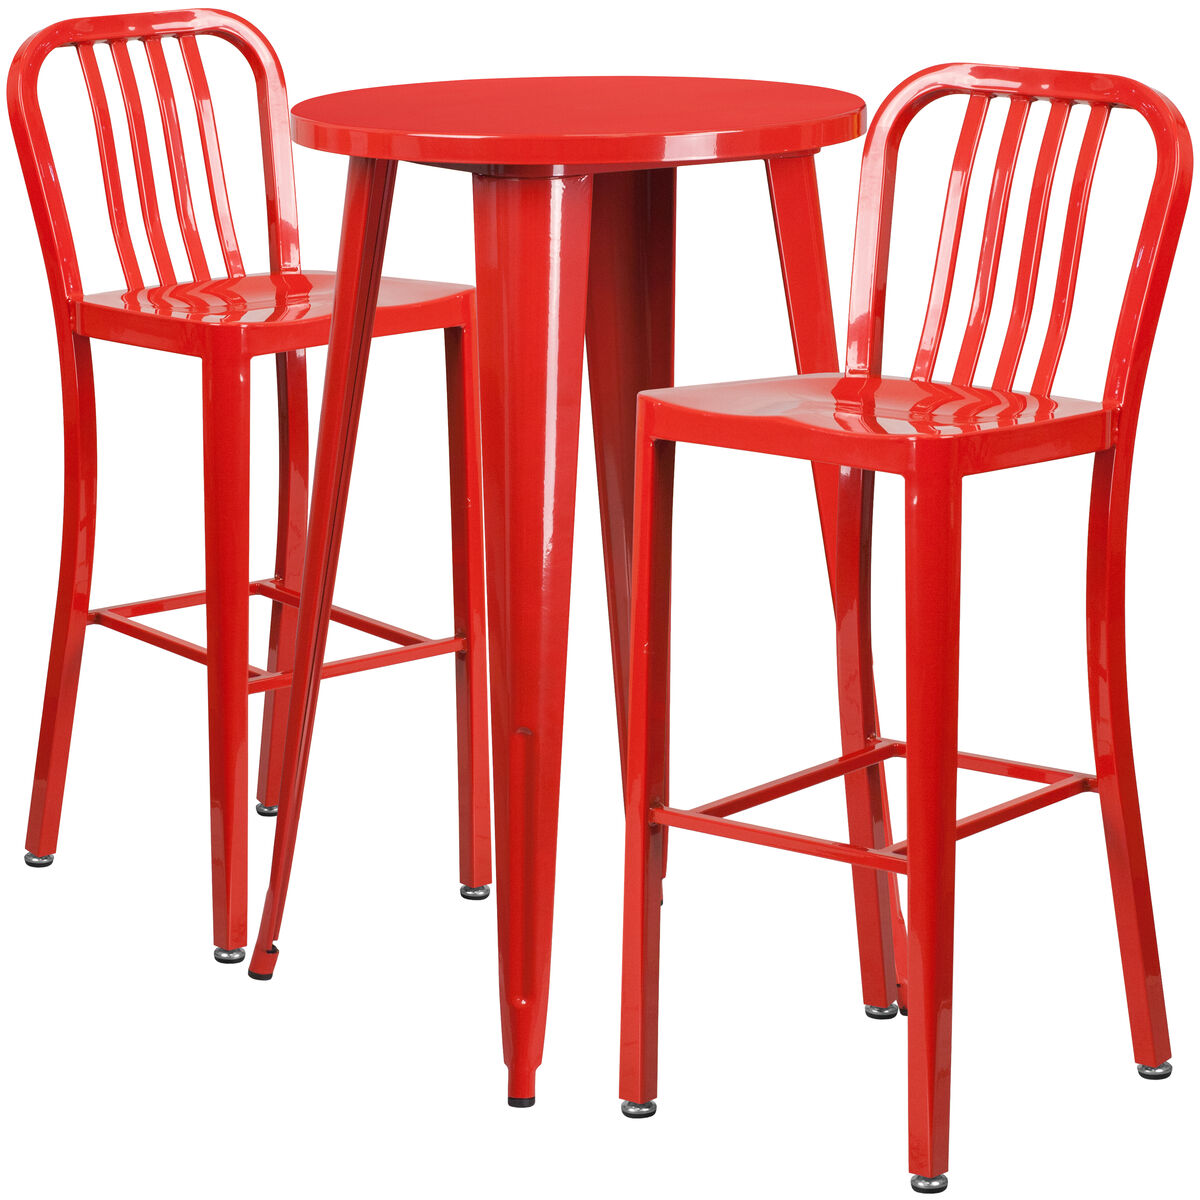 Our 24 Round Red Metal Indoor Outdoor Bar Table Set With 2 Vertical